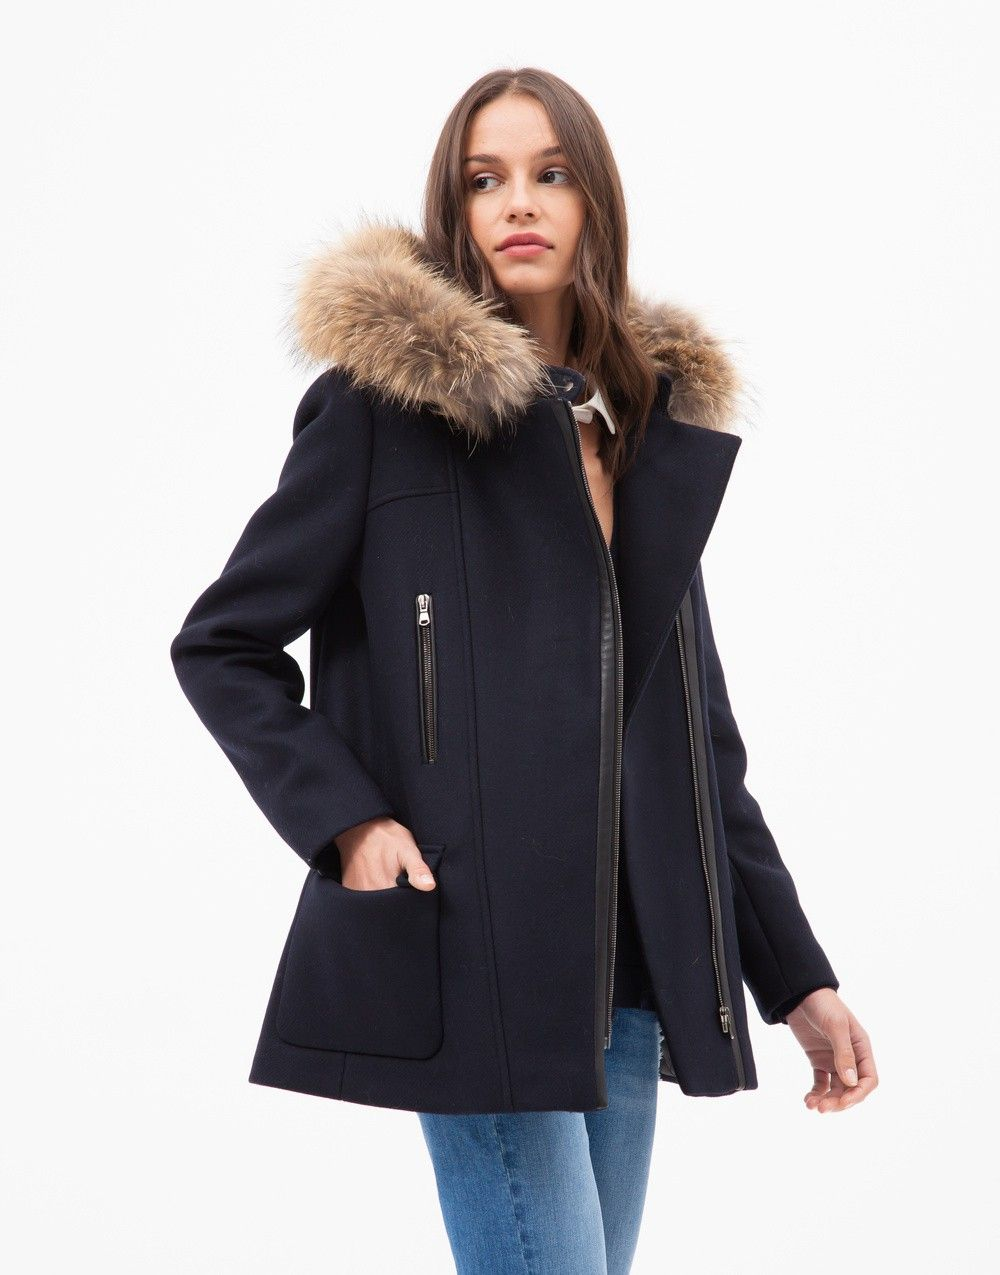 Find great deals on eBay for duffle coat women. Shop with confidence.